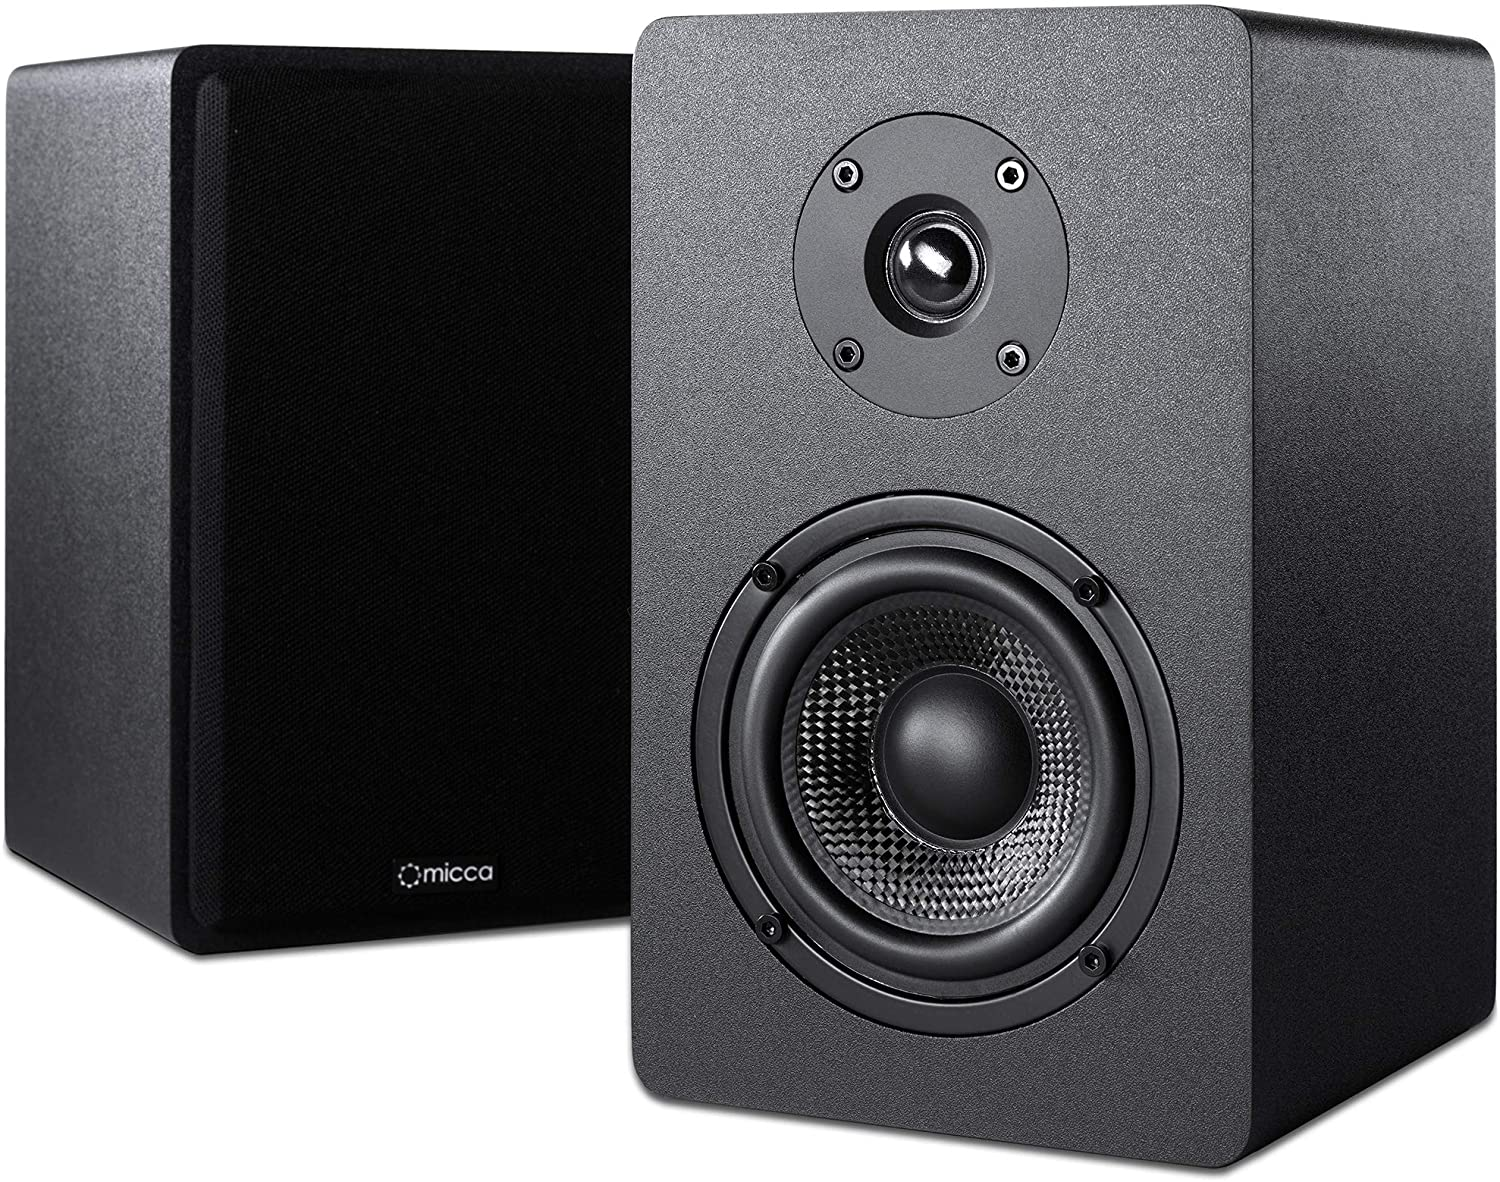 Full Micca PB42X Powered Bookshelf Speaker Review | 2020,Micca PB42X Powered Bookshelf Speaker,Micca PB42X, Aumoz | BEST Audio Components 2020